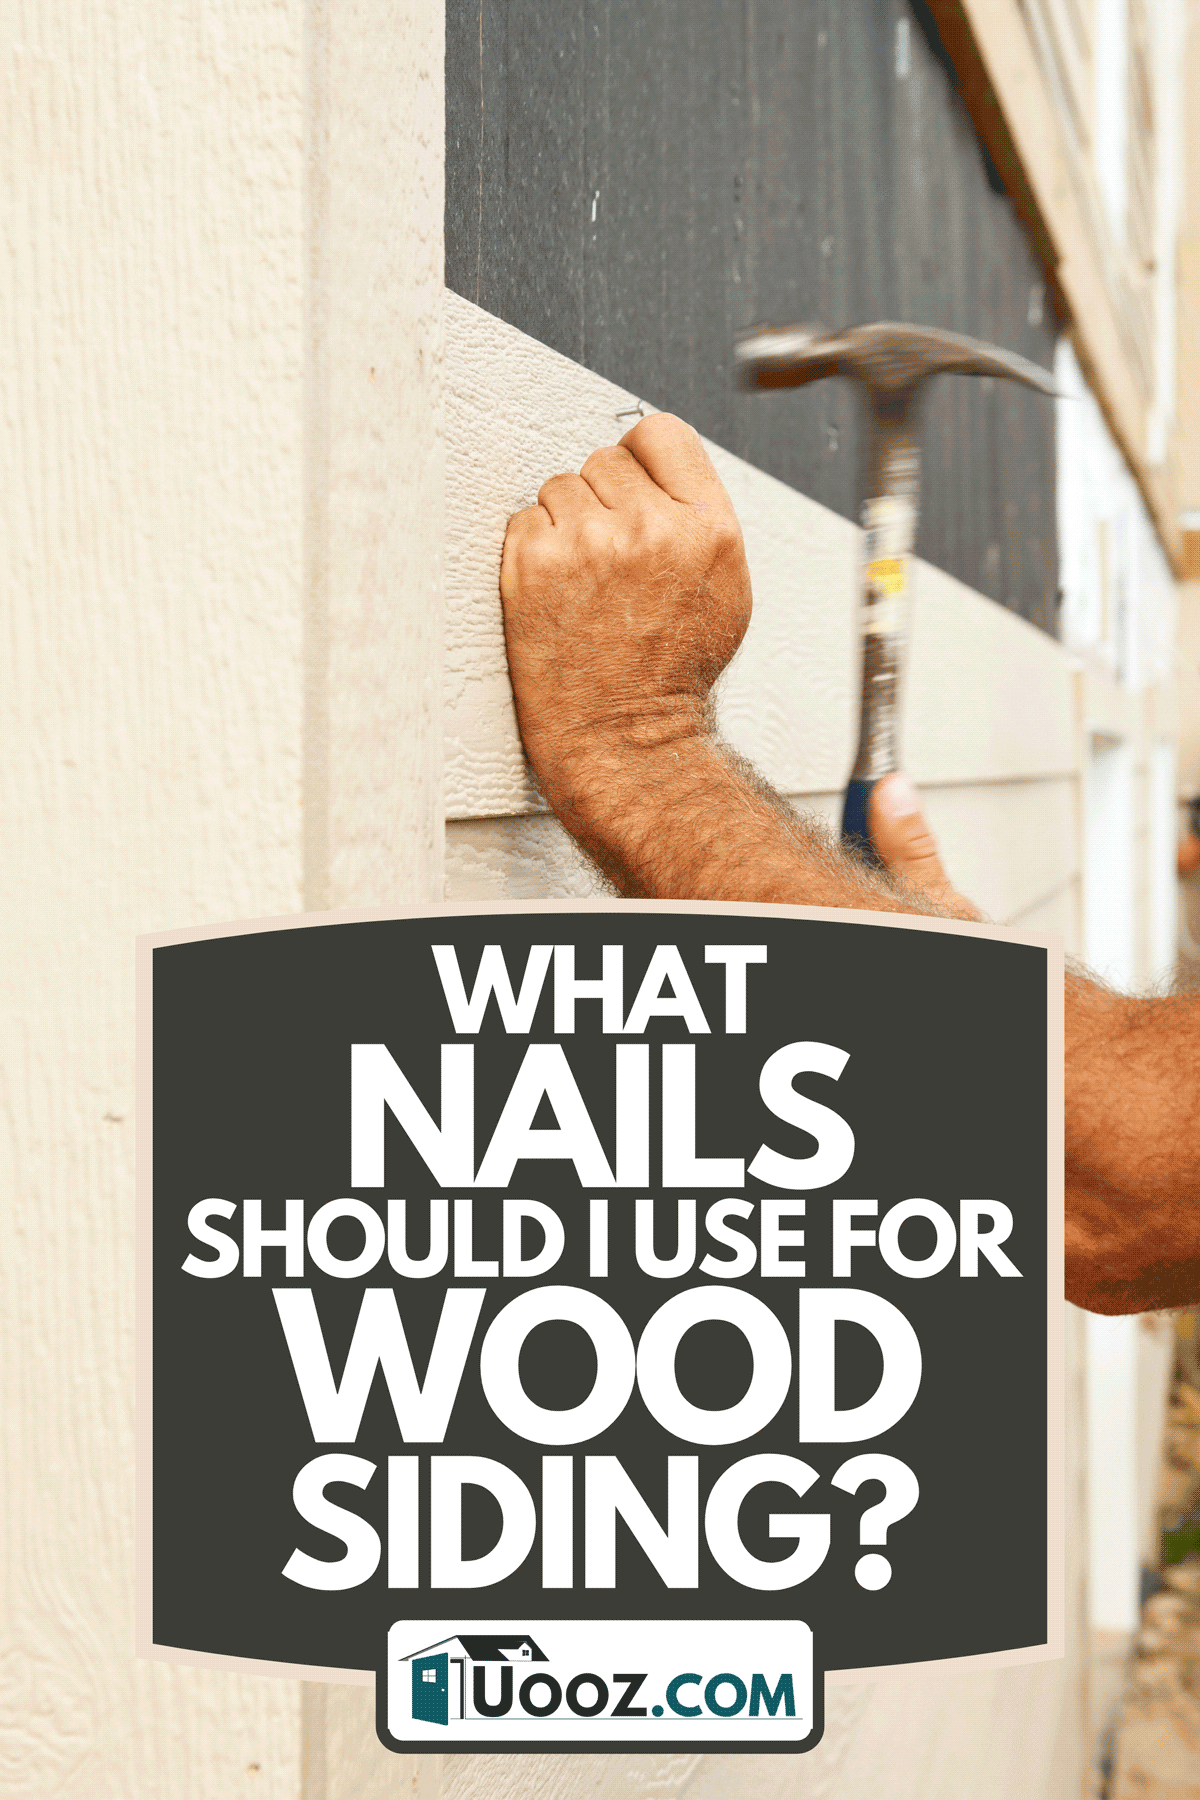 A construction worker using hammer installing siding onto a tar paper covered exterior house wall, What Nails Should I Use For Wood Siding?